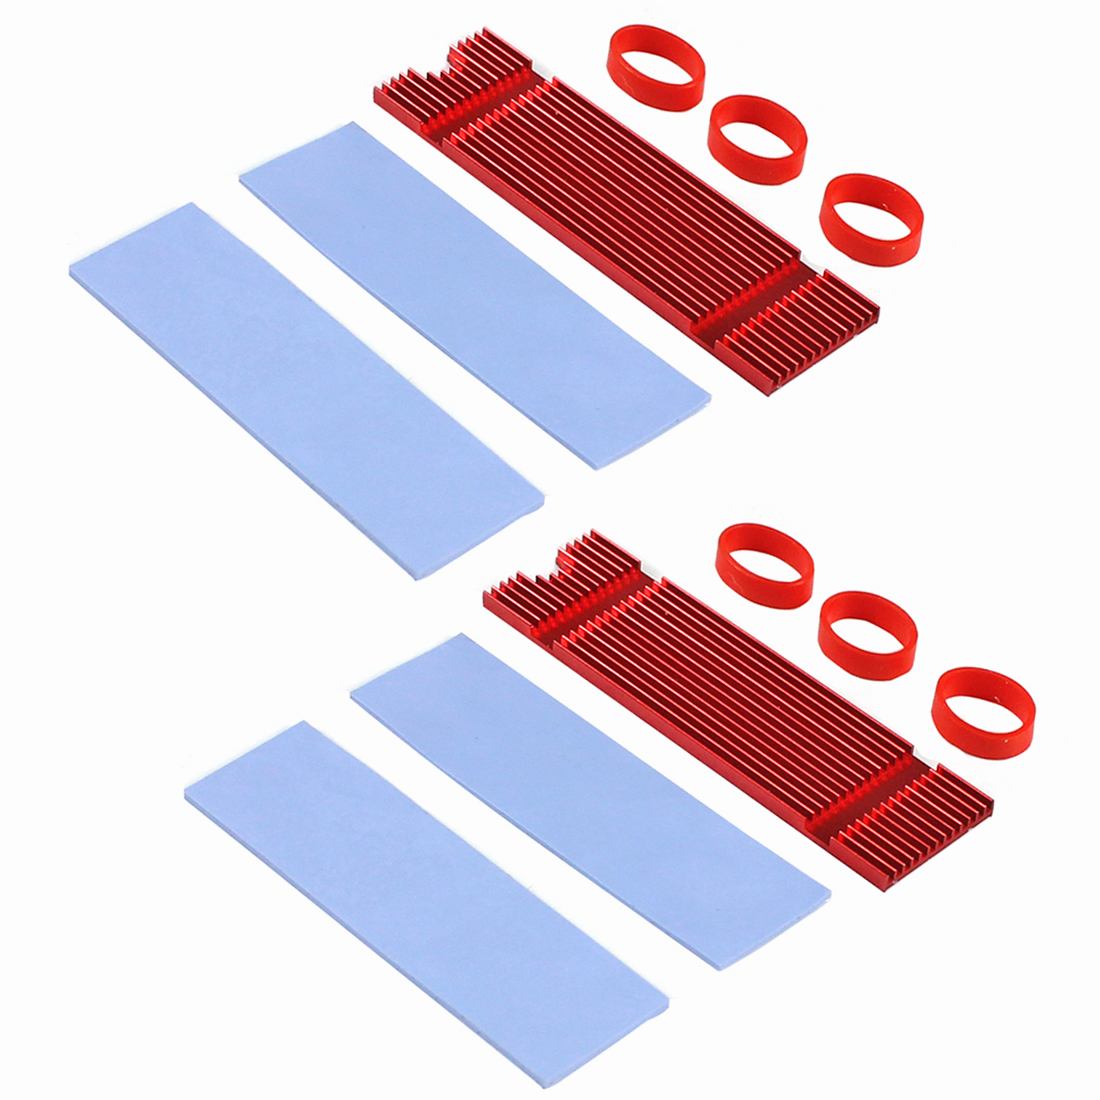 JEYI Cooling Warship M.2 Heatsink NVME Heat Sink NGFF M.2 2280 Copper Sheet Thermal Conductivity Silicon Wafer Cooling